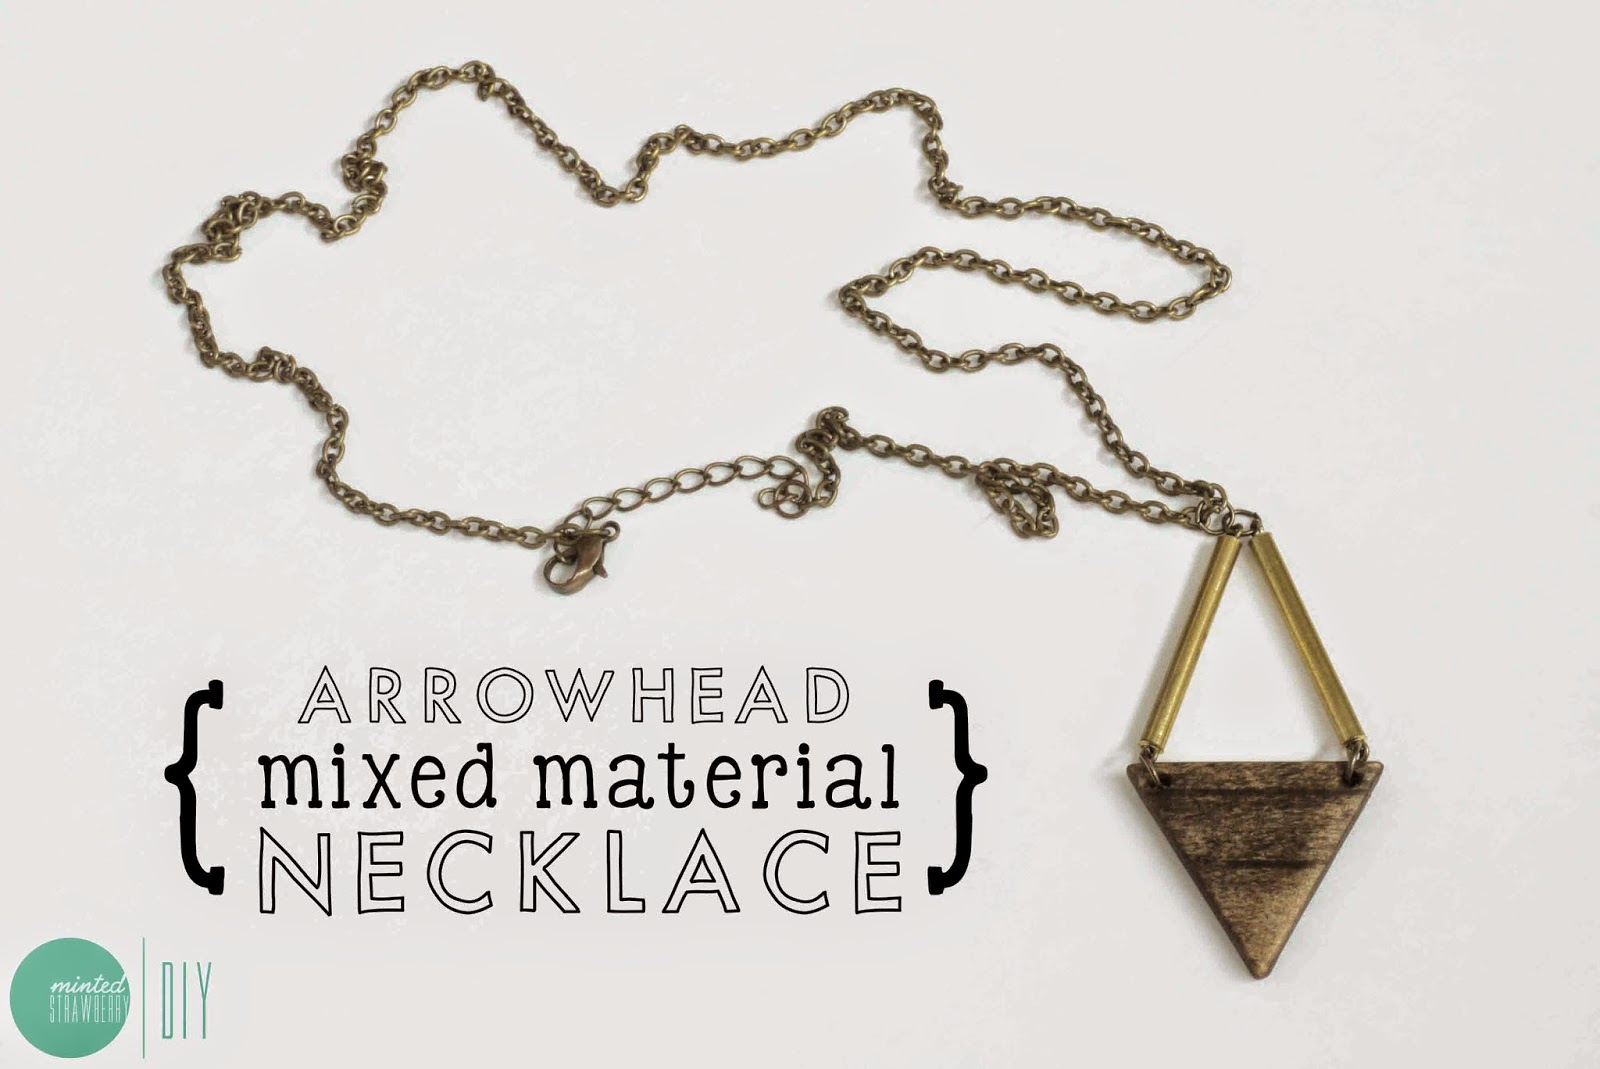 DIY Arrowhead Mixed Material Necklace | Dremel Projects To Make America Great Again